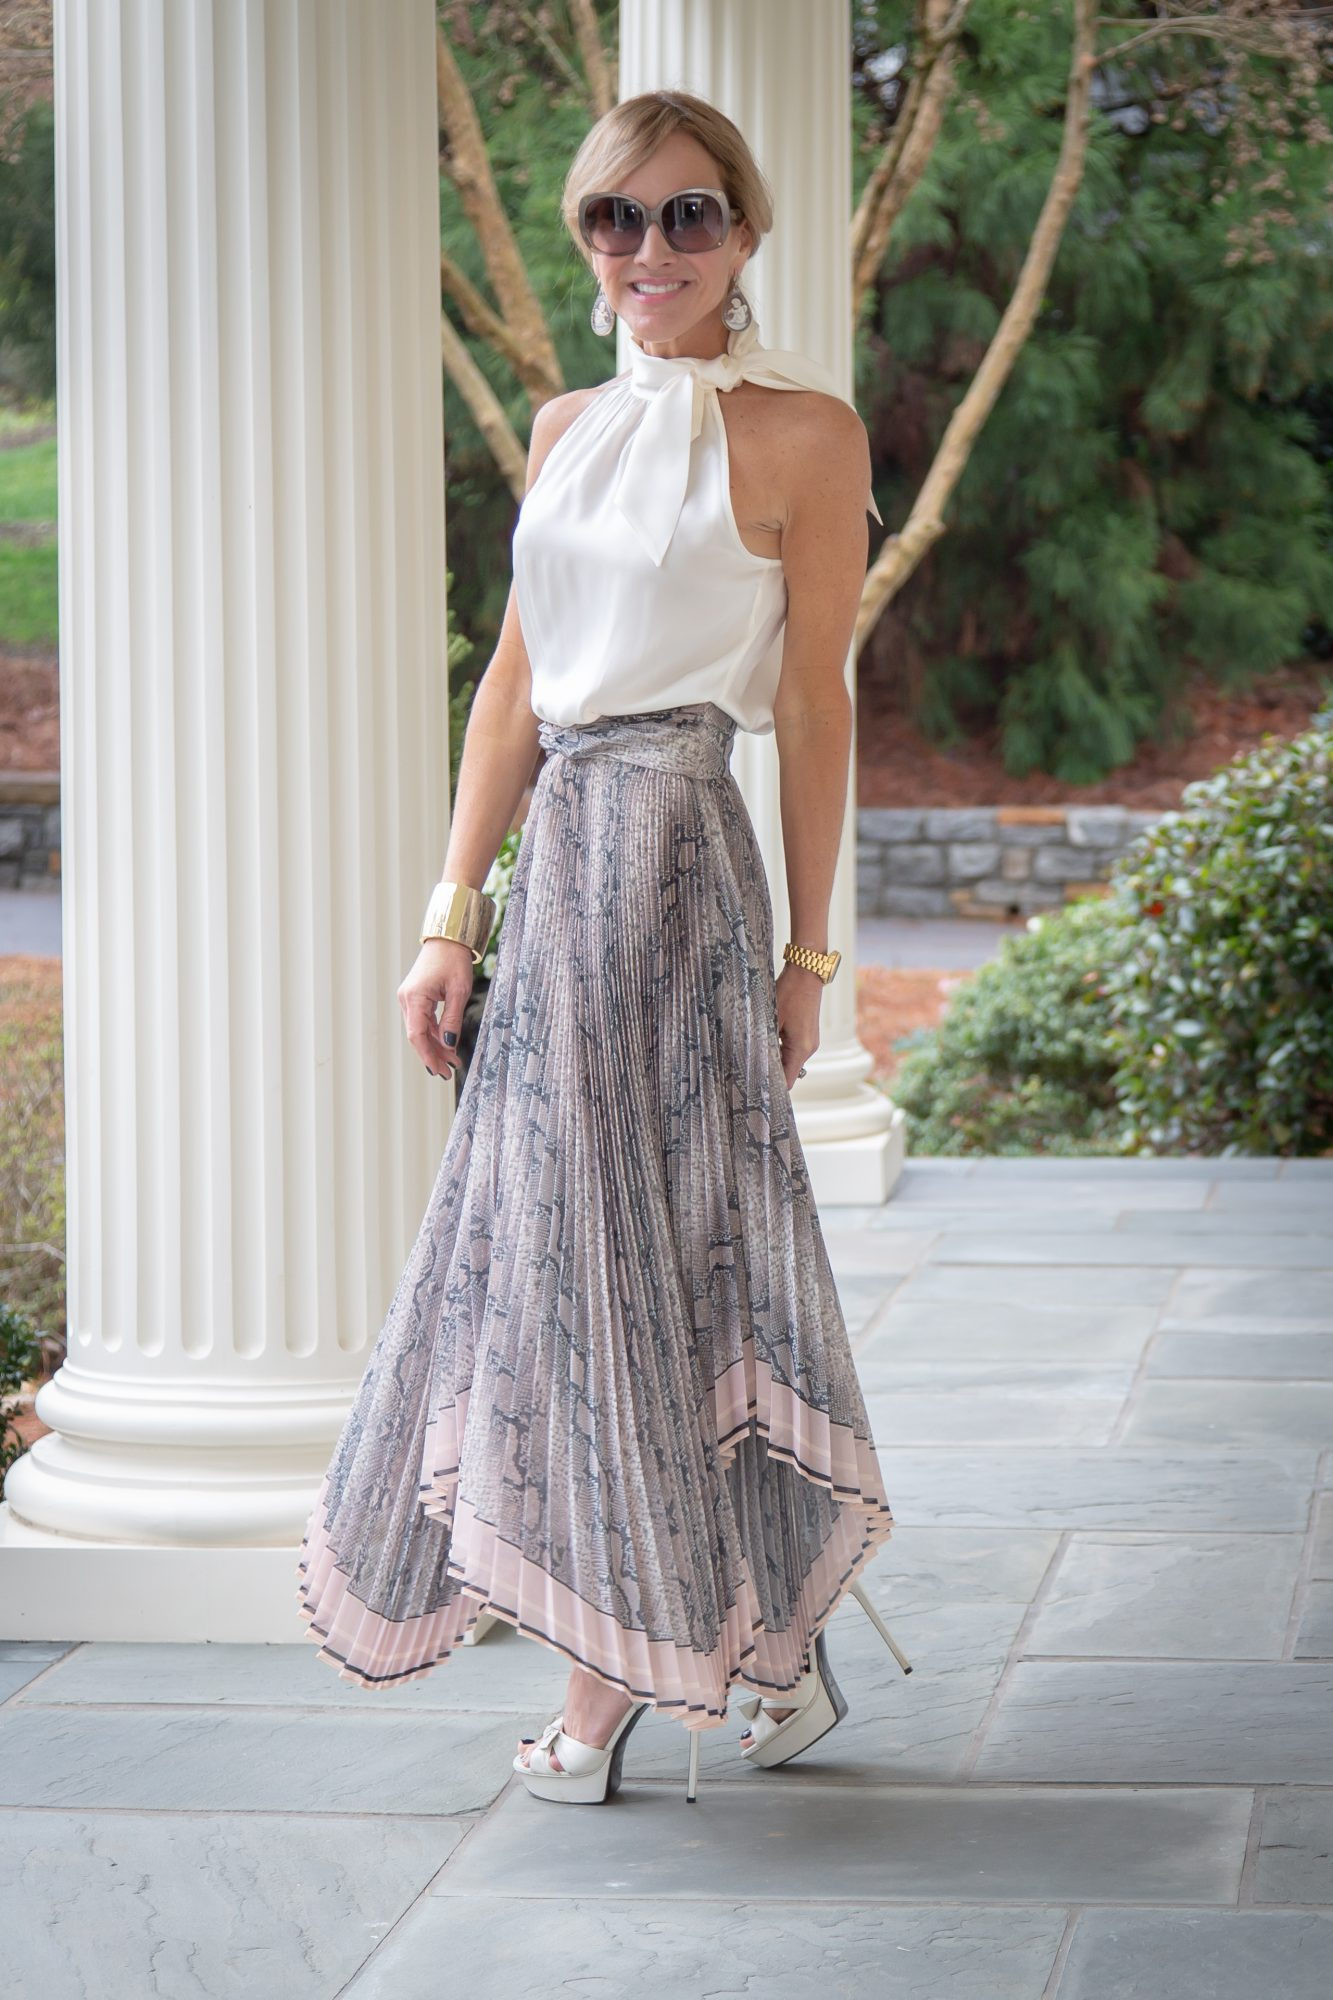 91bf046360 Kirb Your Style - New York Trends in Southern Style - Vickie Kirbo